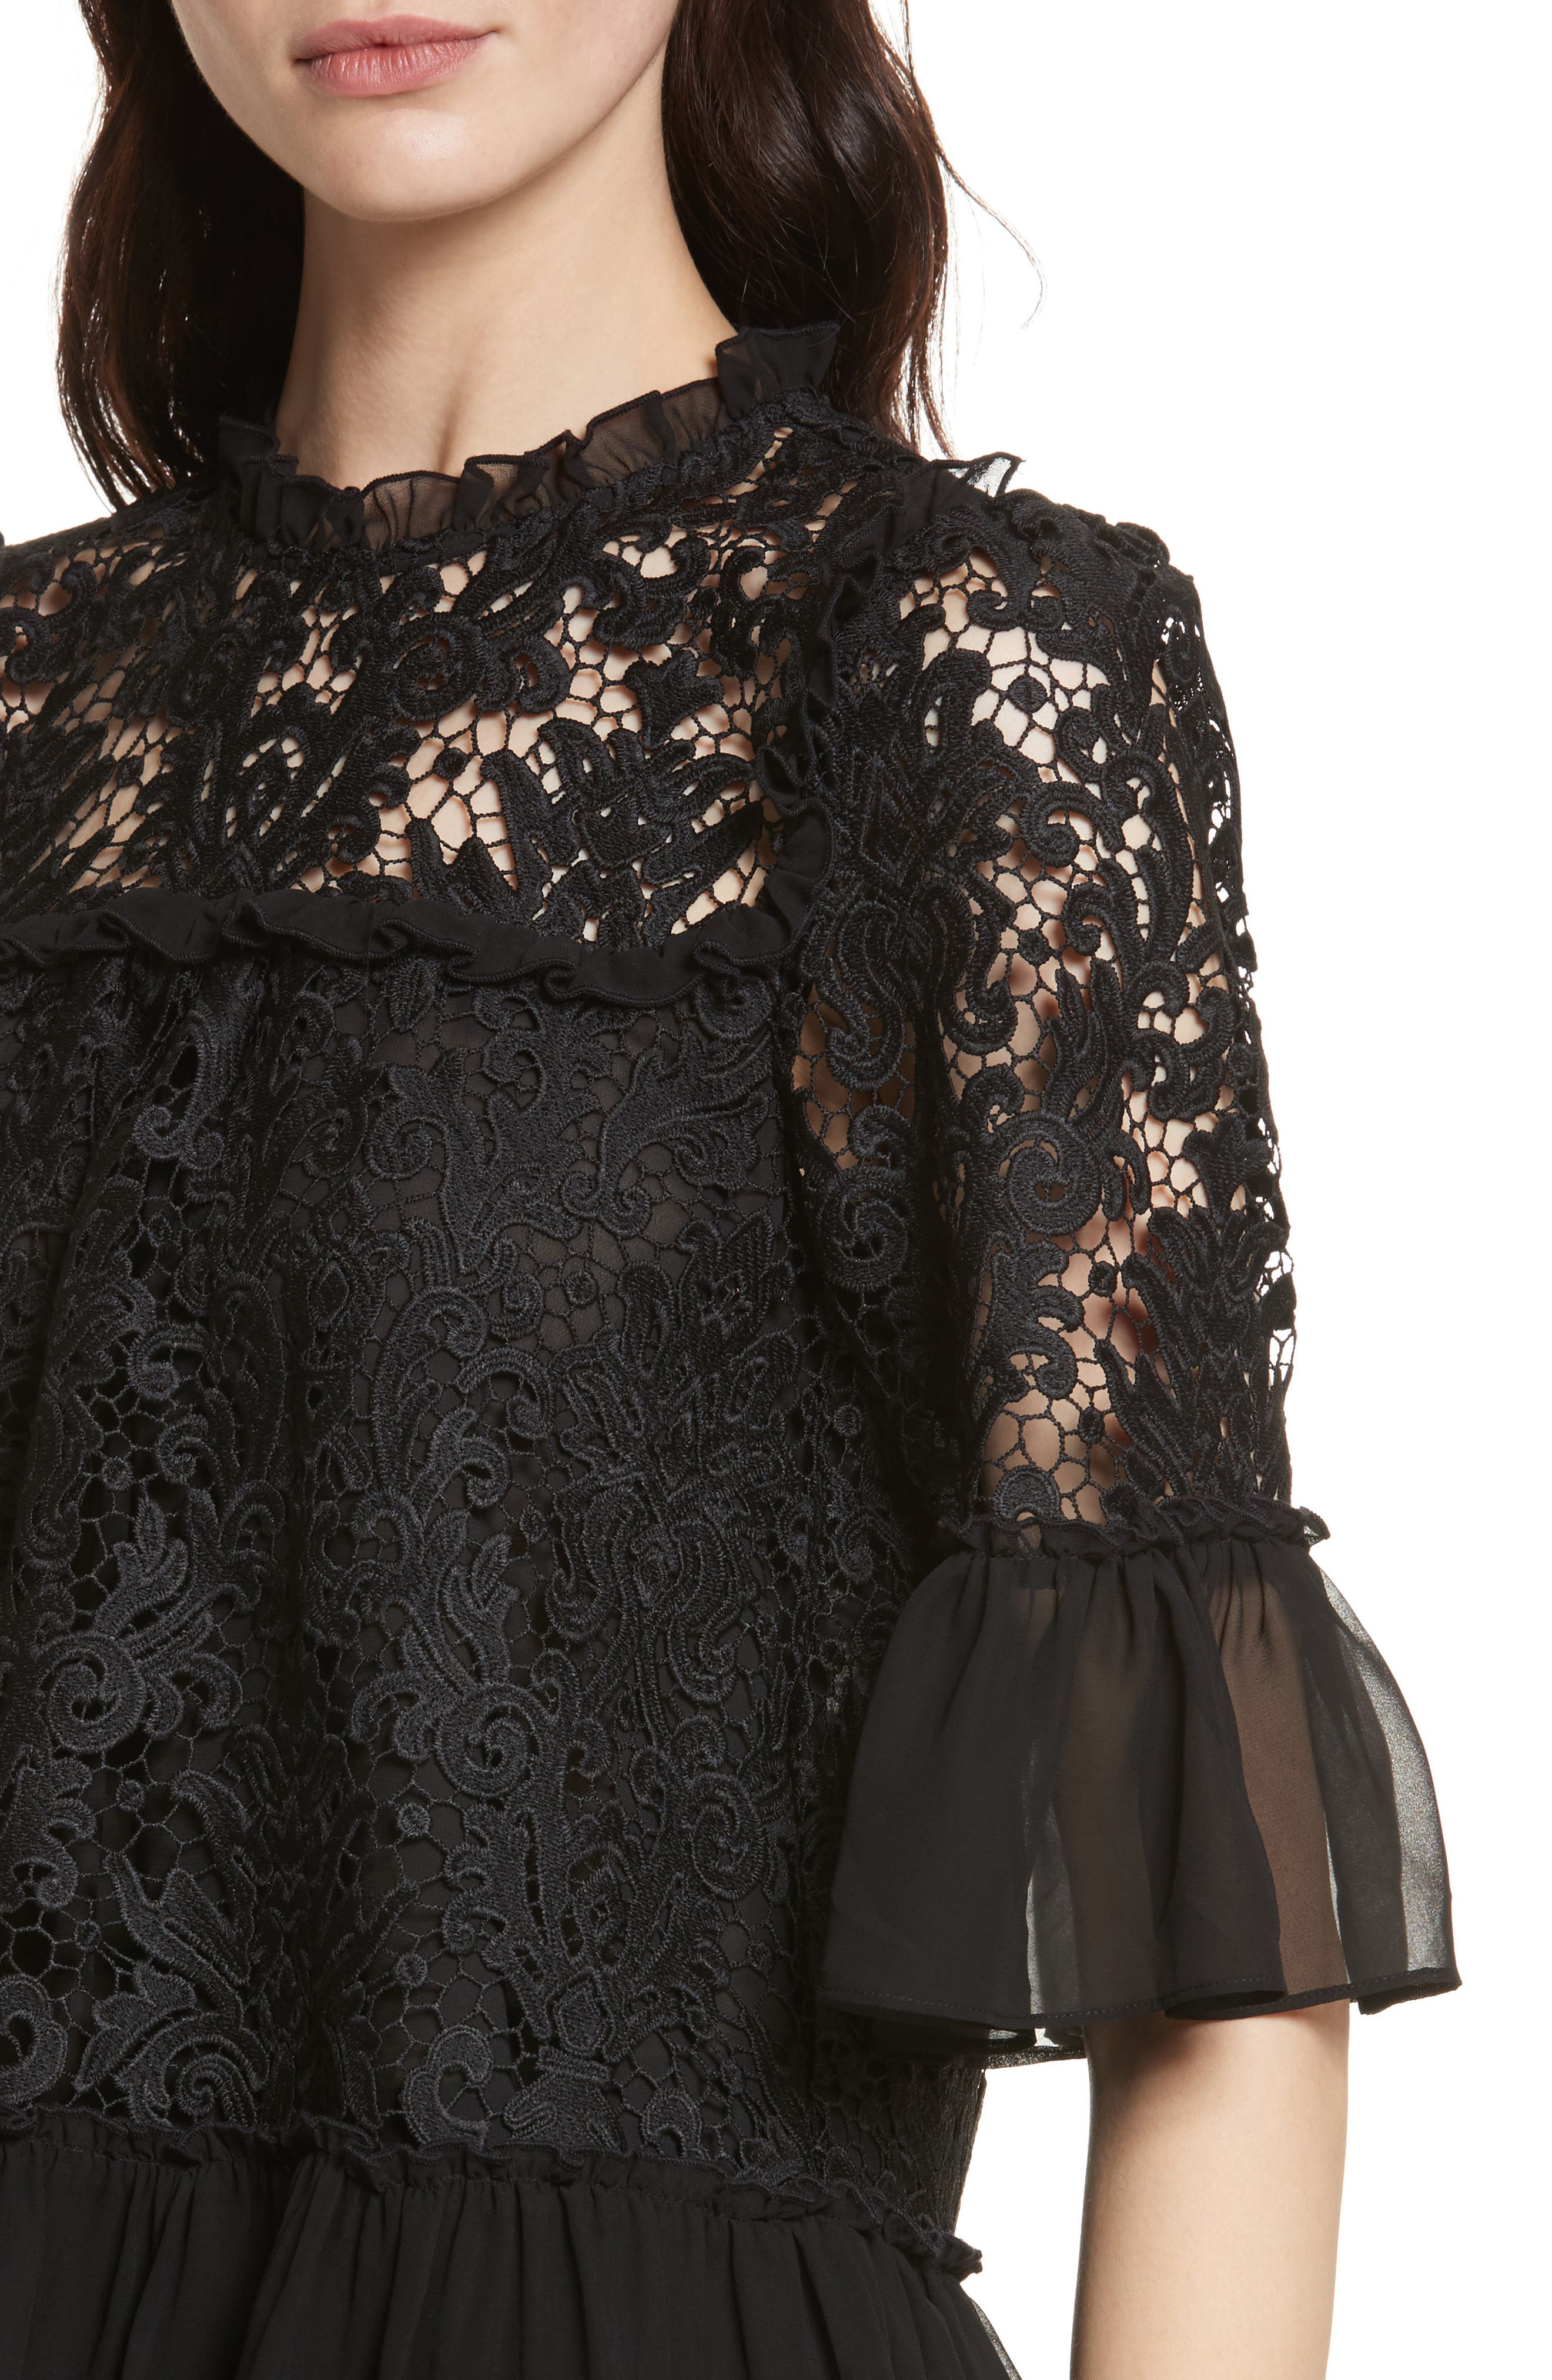 kate spade tapestry lace top,                             Alternate thumbnail 4, color,                             001